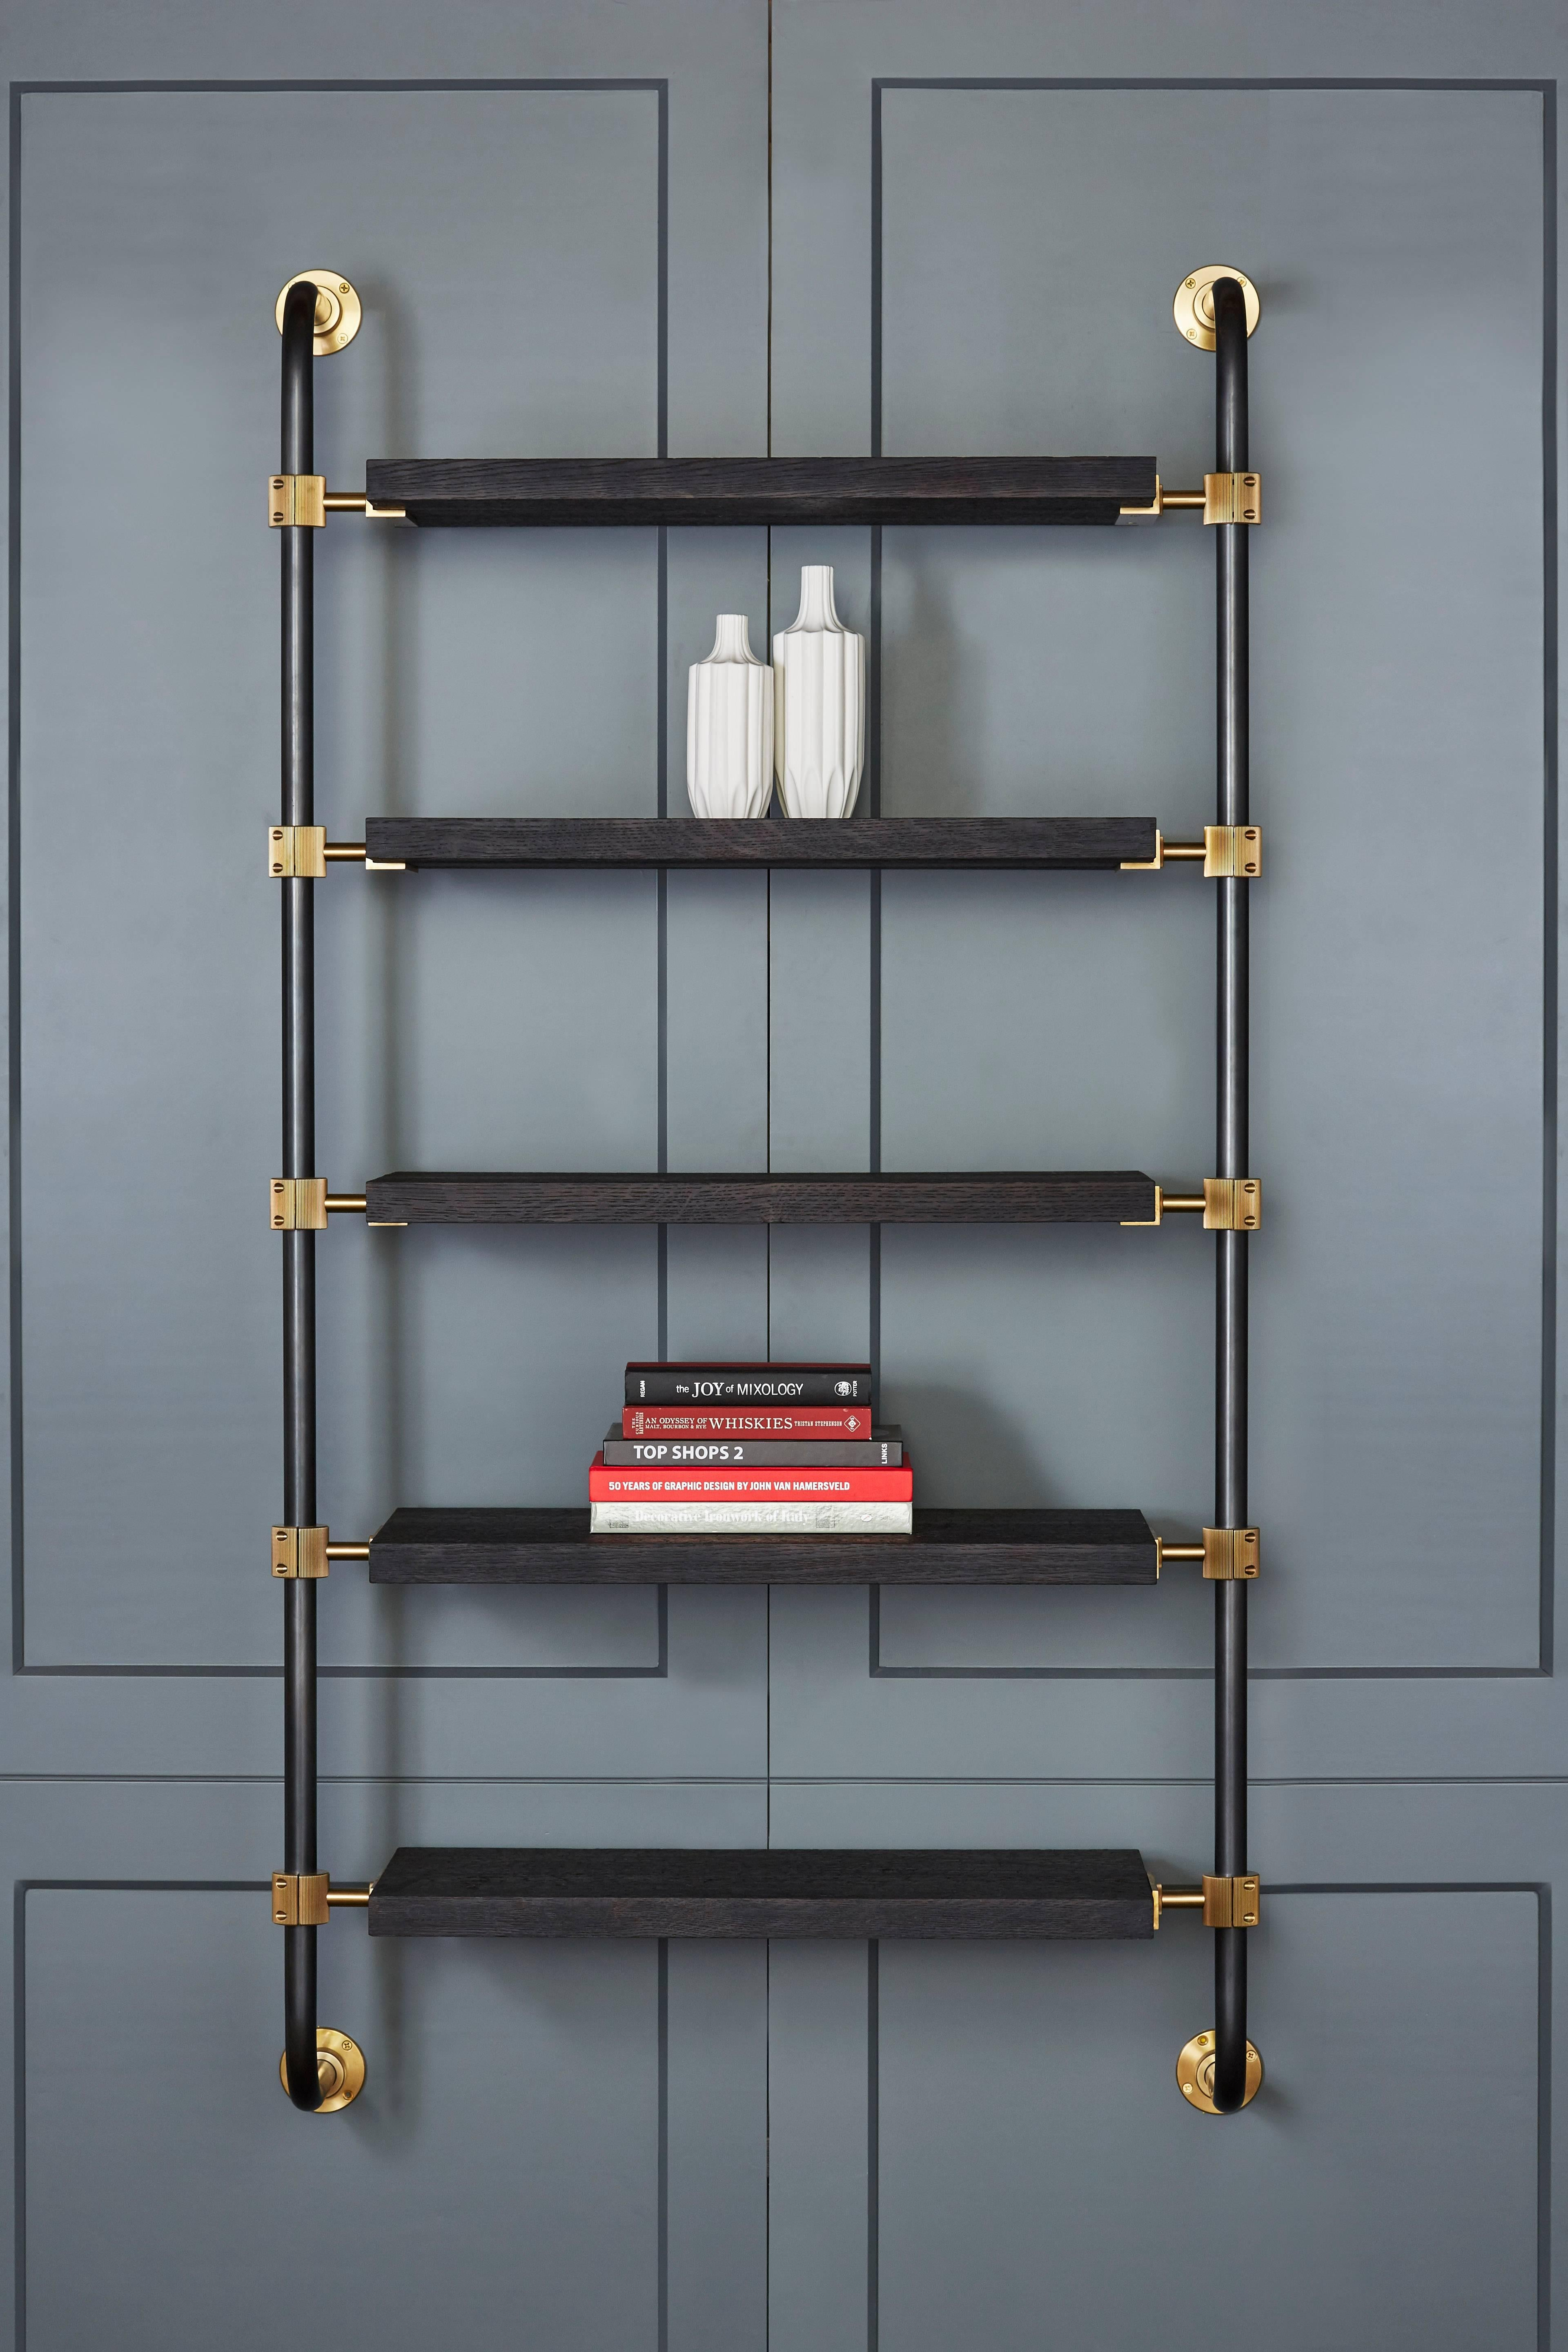 Wall Mounted Adjustable Loft Shelves With Brass Fittings And Burnt Oak Shelves For Sale At 1stdibs